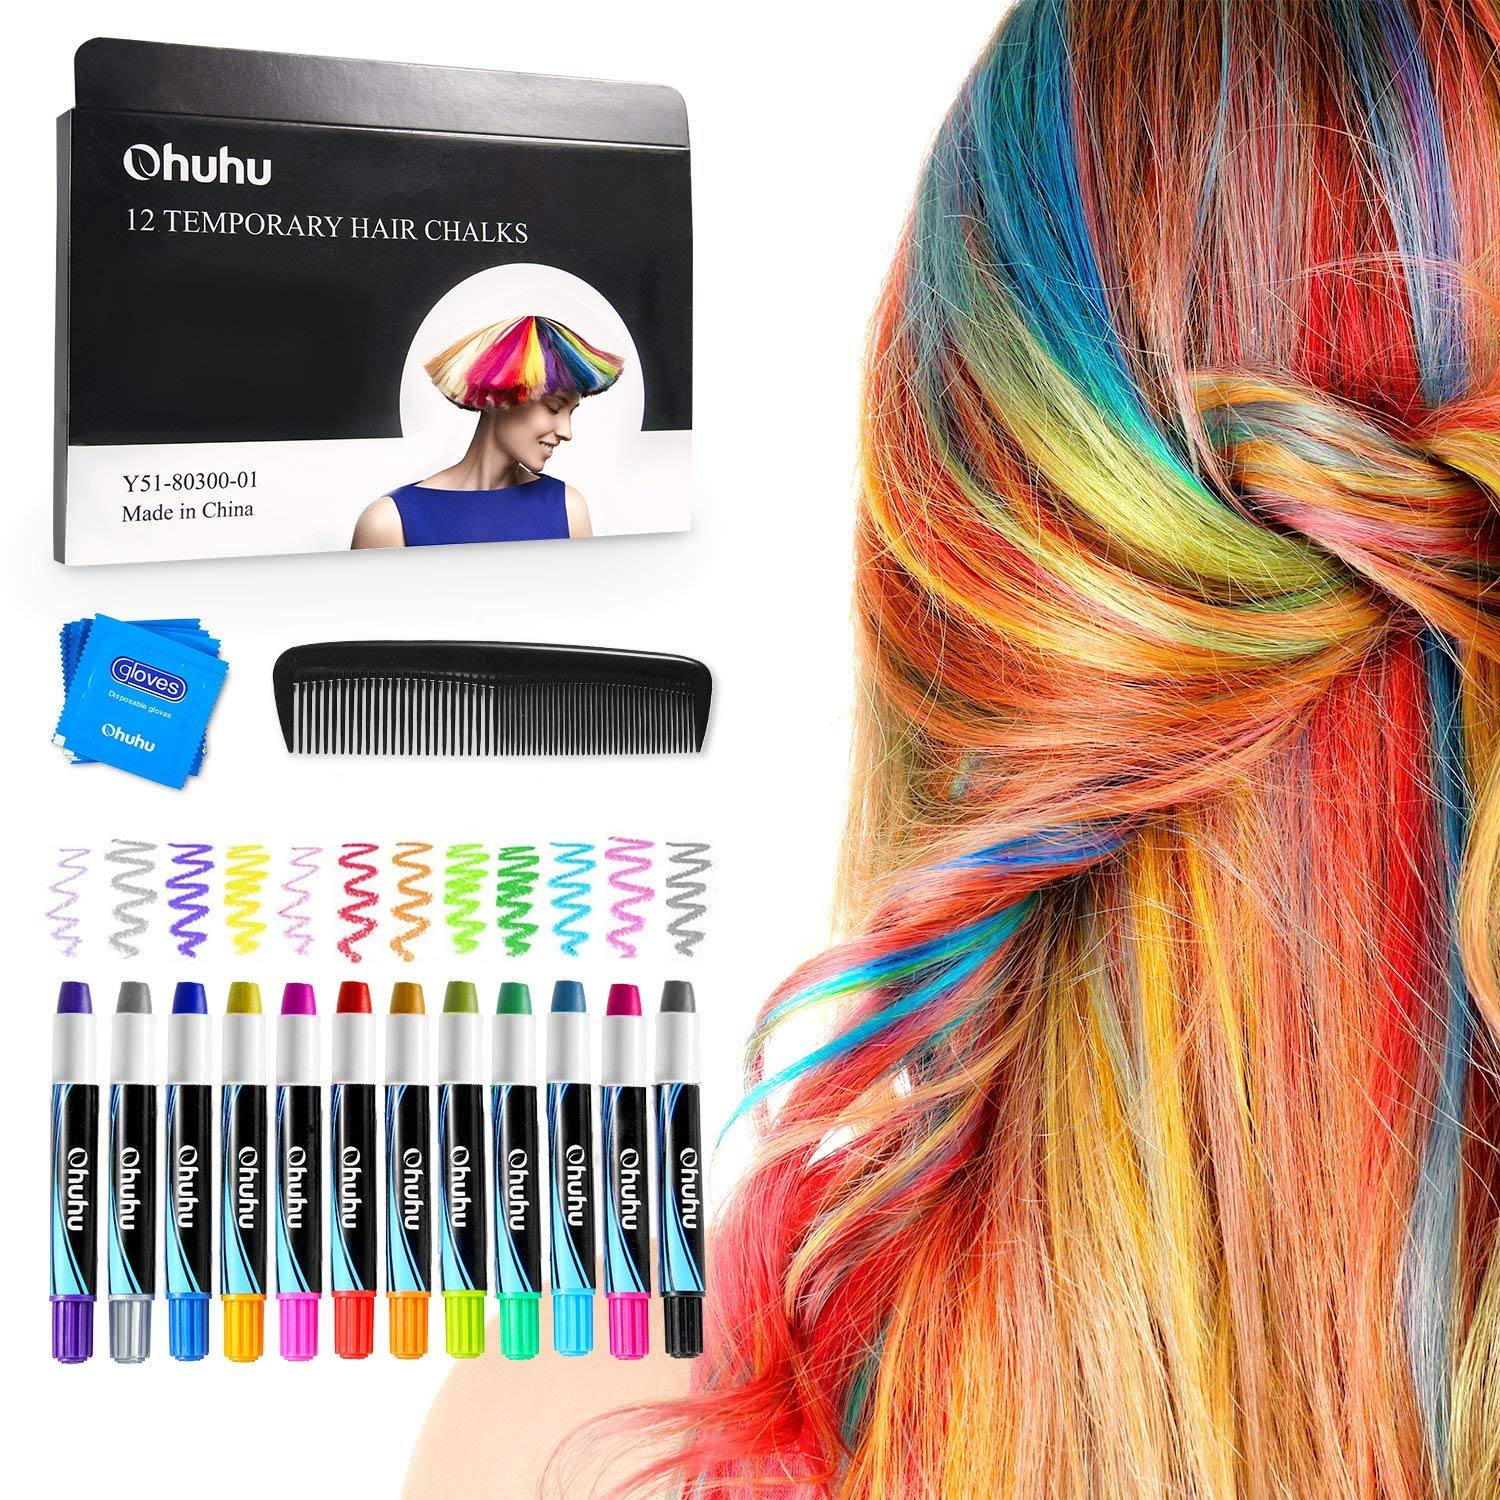 Details about Hair Chalk 12 Colors Temporary Hair Dye Marker for Kids  Washable Pen Teens Gift